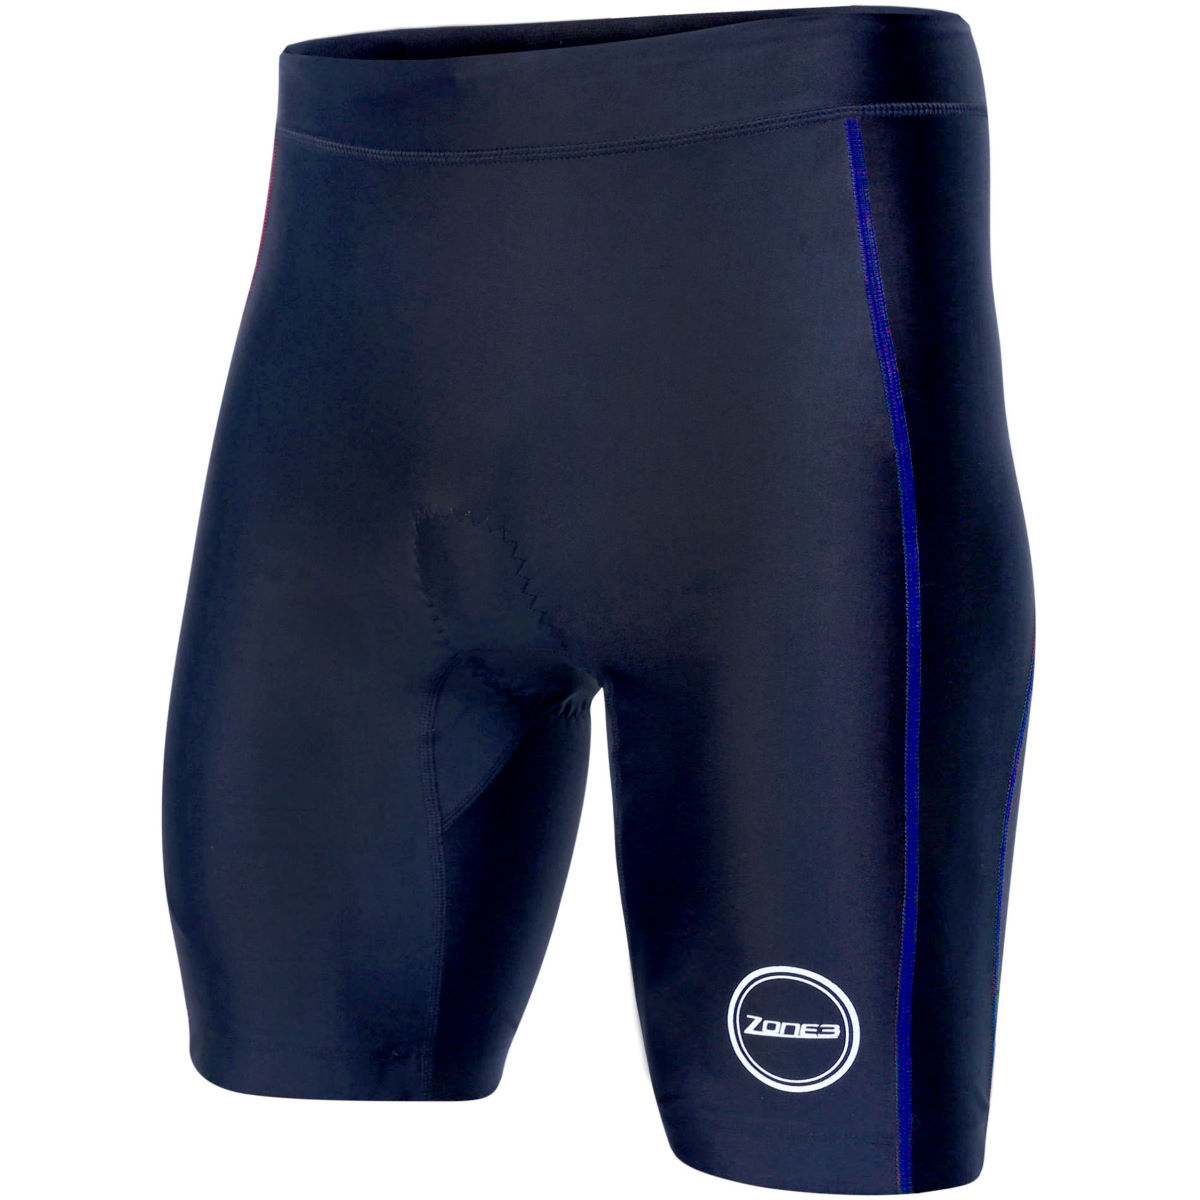 Zone3 mens activate tri shorts 2016 tri shorts black blue 2016 16652